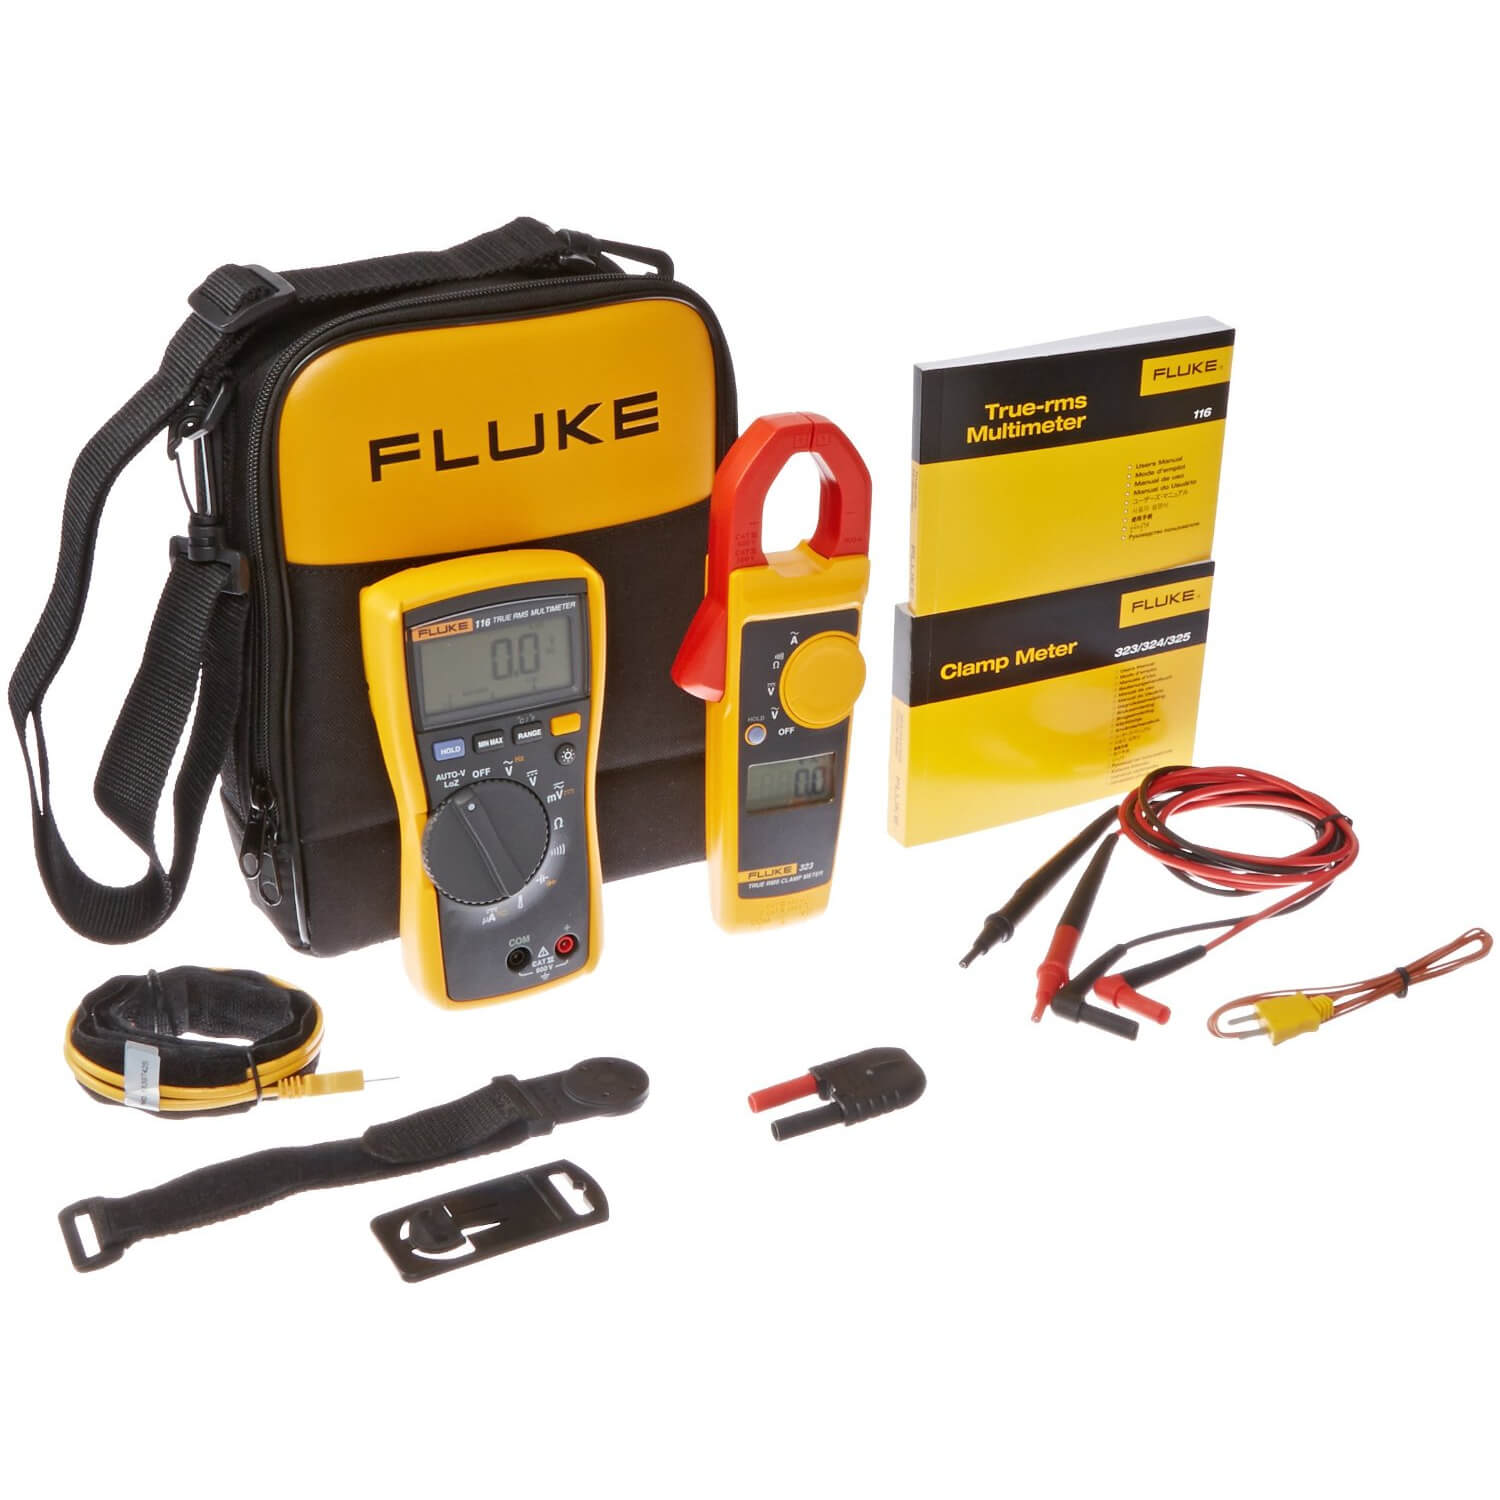 Fluke 116/323 TRMS Multimeter and Clamp Meter Kit for HVAC